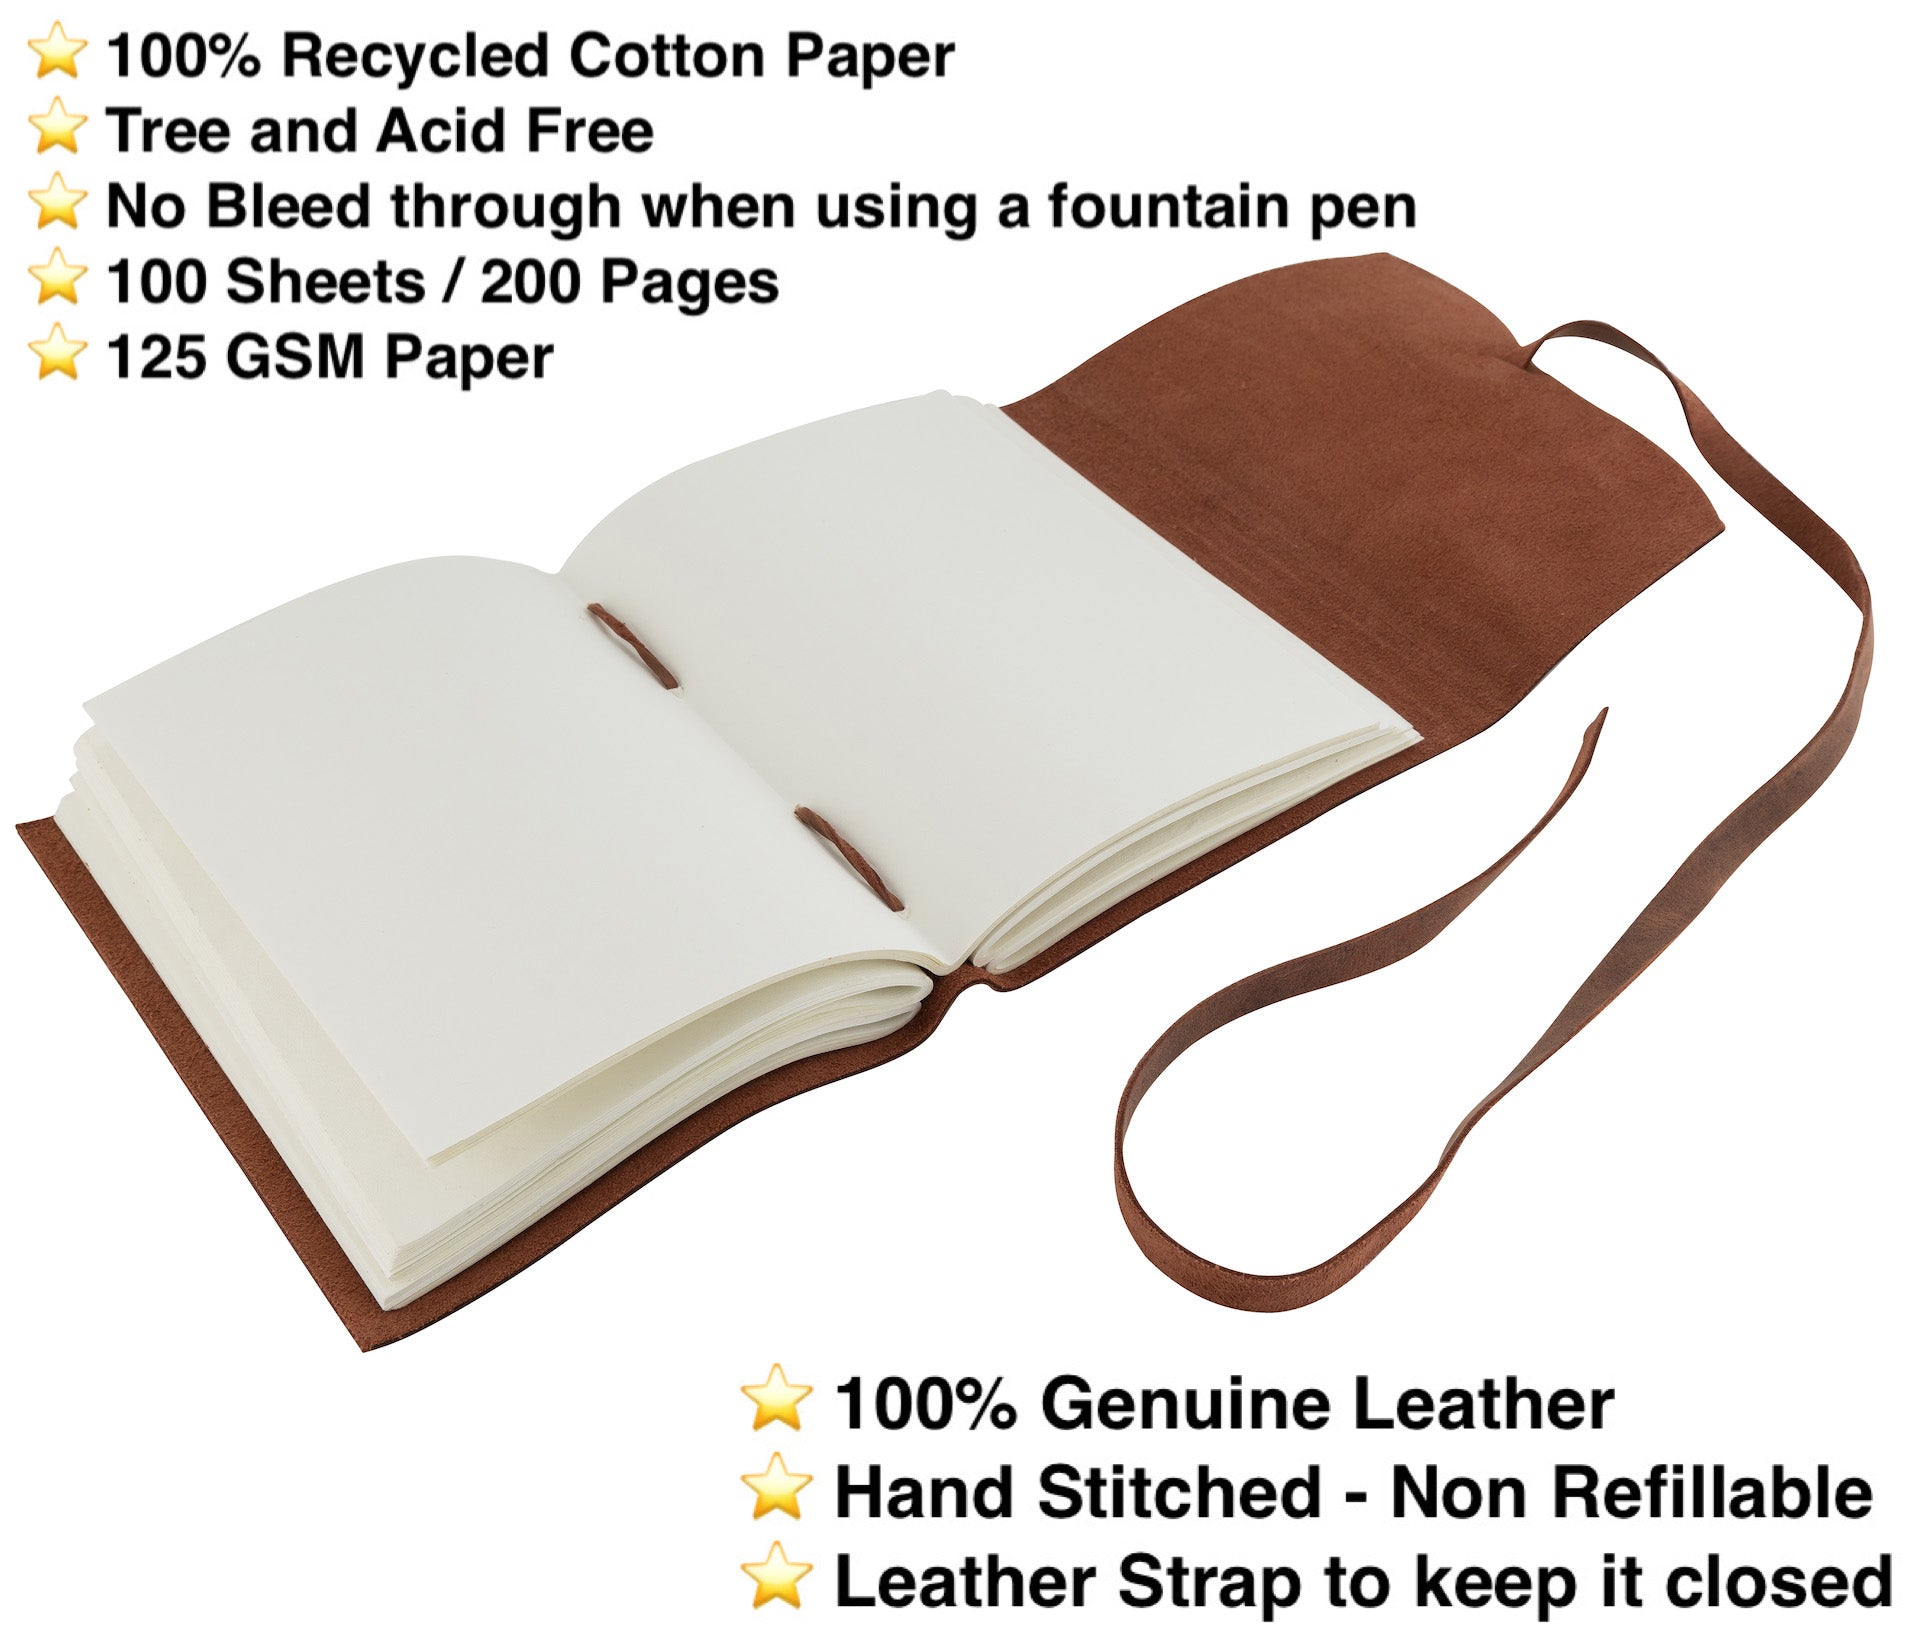 Handmade Leather Flap Journal, 200 Thick Unlined Recycled Cotton Pages